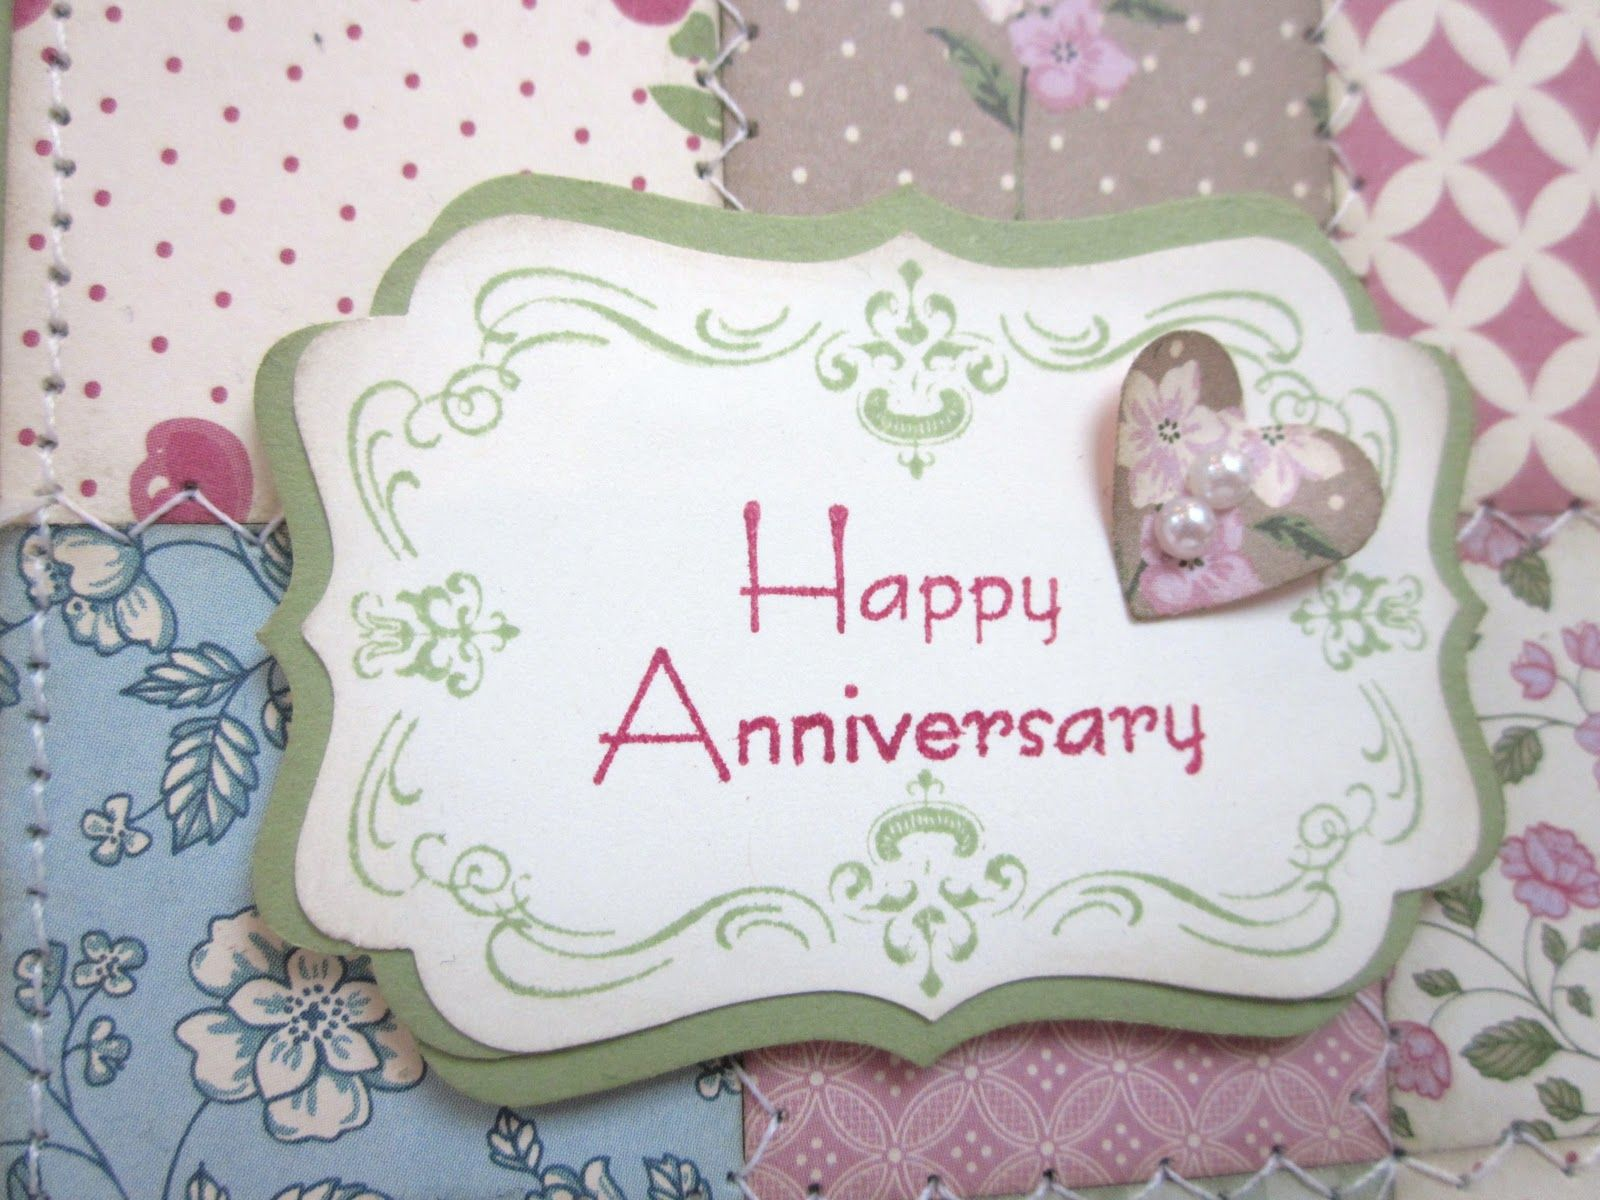 Wedding Anniversary Gifts For Husband In Pakistan : Wedding Anniversary Saad Bhai & Bhabhi (Sorryy Its Late!) Pakistan ...